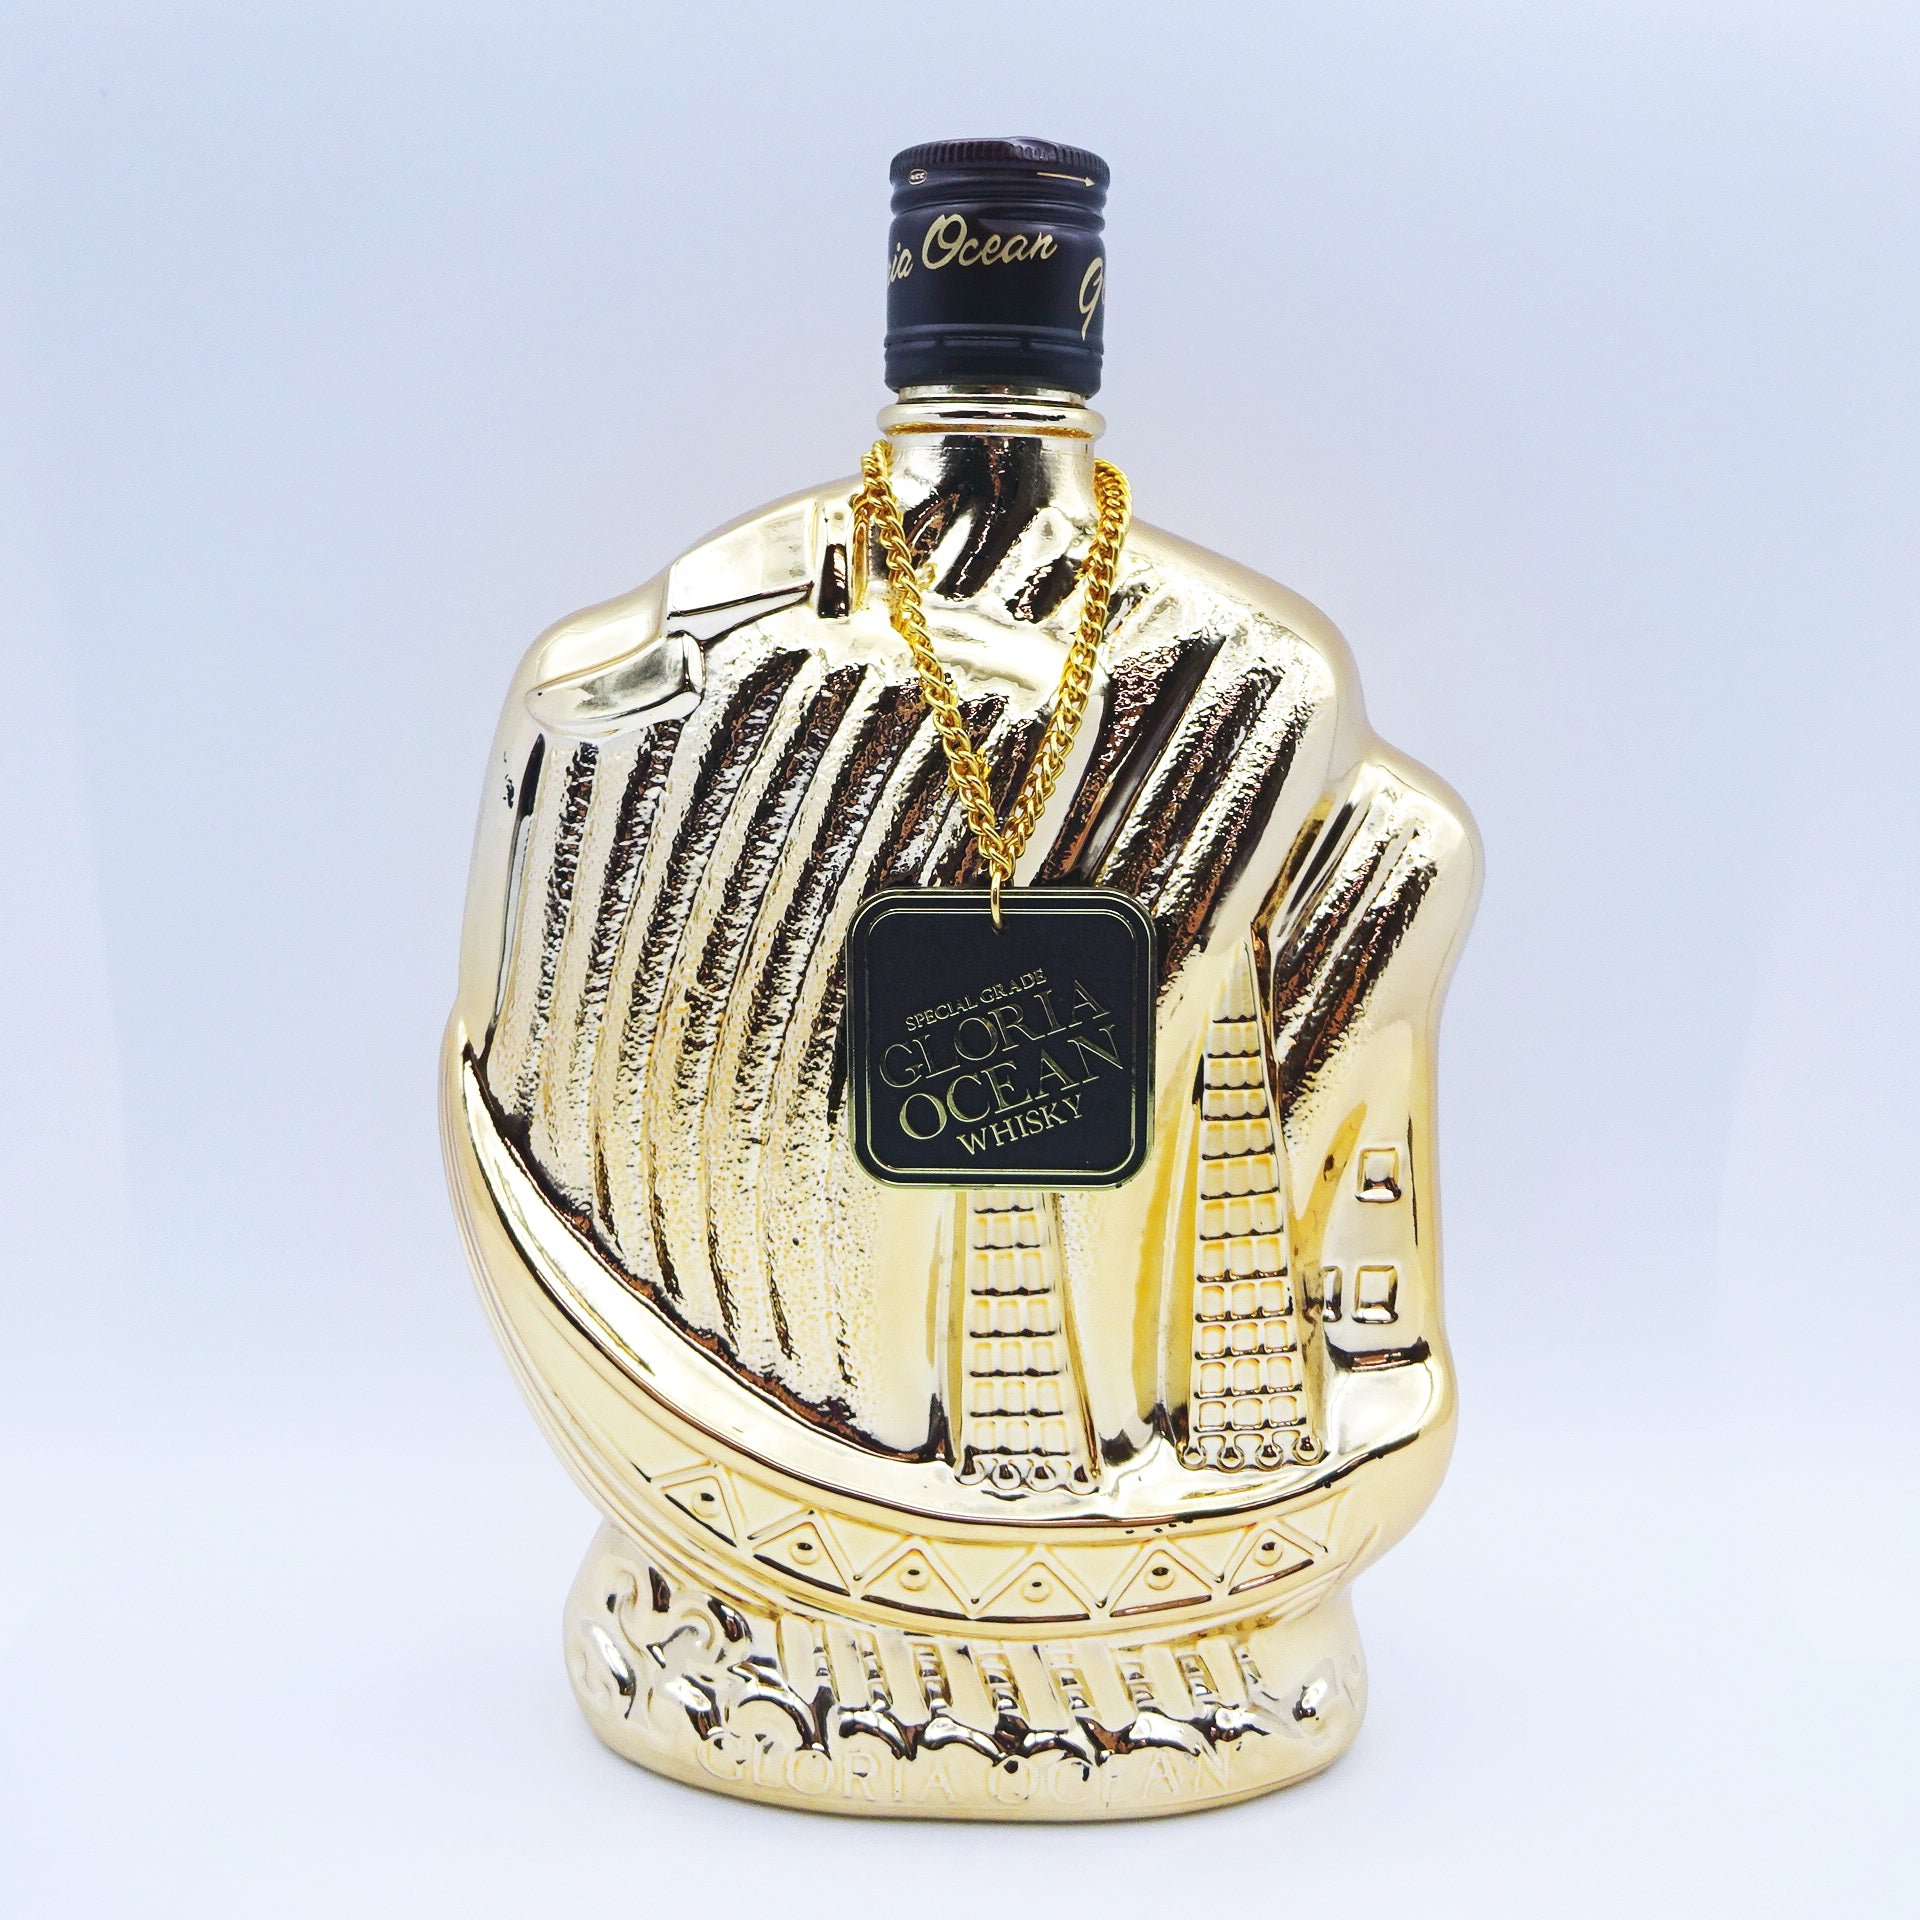 Karuizawa Gloria Ocean Whisky Gold Ship Bottle 1980s-Whisky-Cool Rare Japan